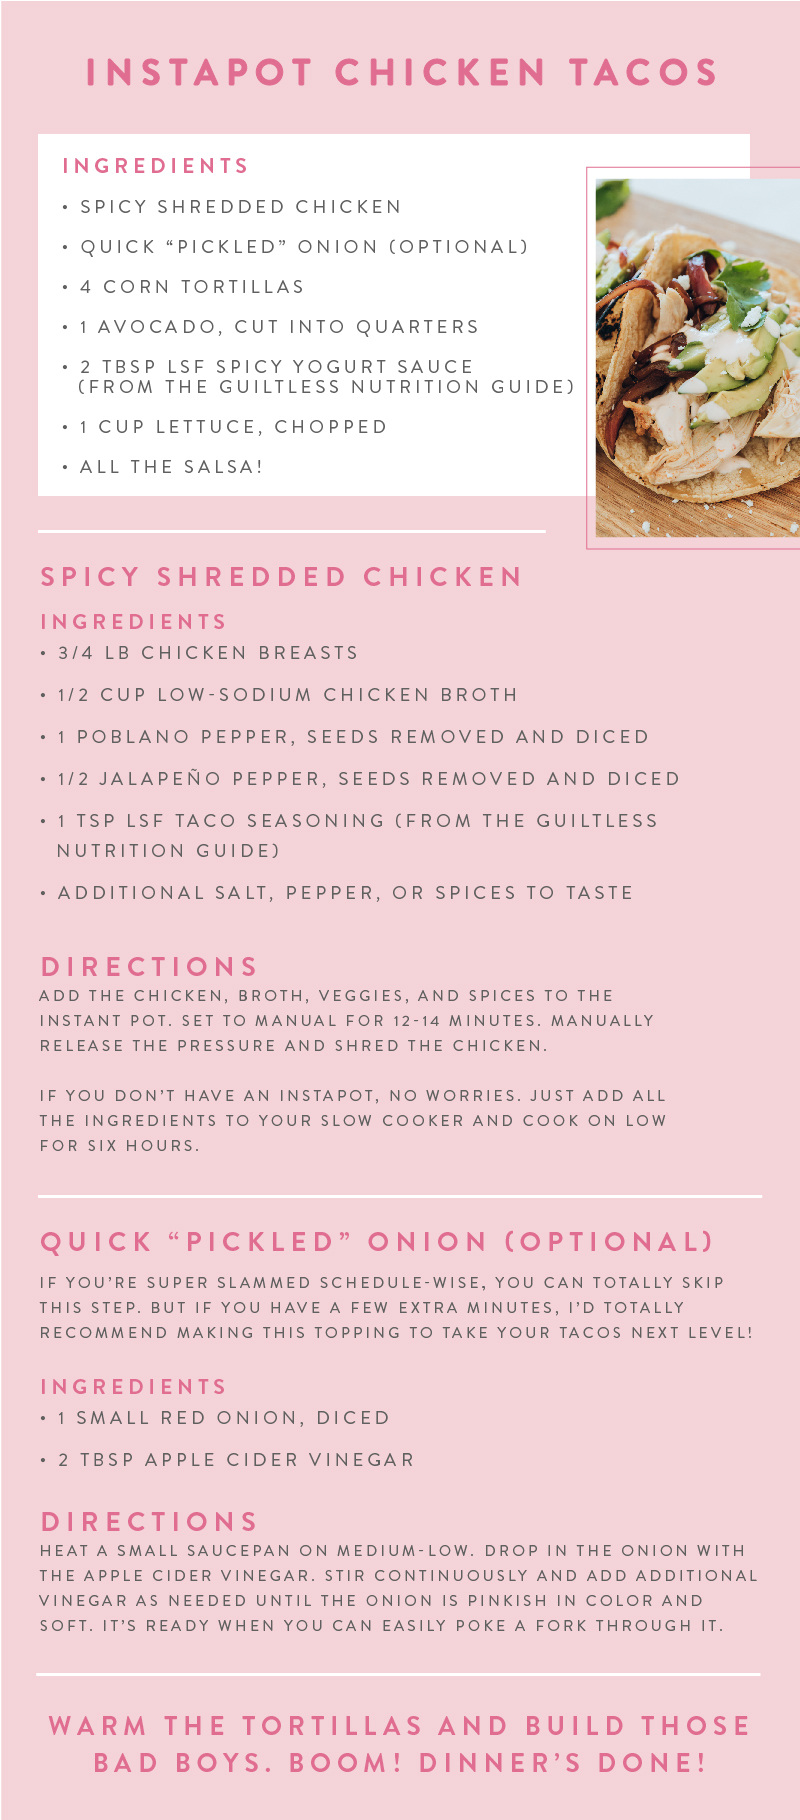 Love Sweat Fitness Love Sweat Fitness Chicken Tacos Workout Meal Plan